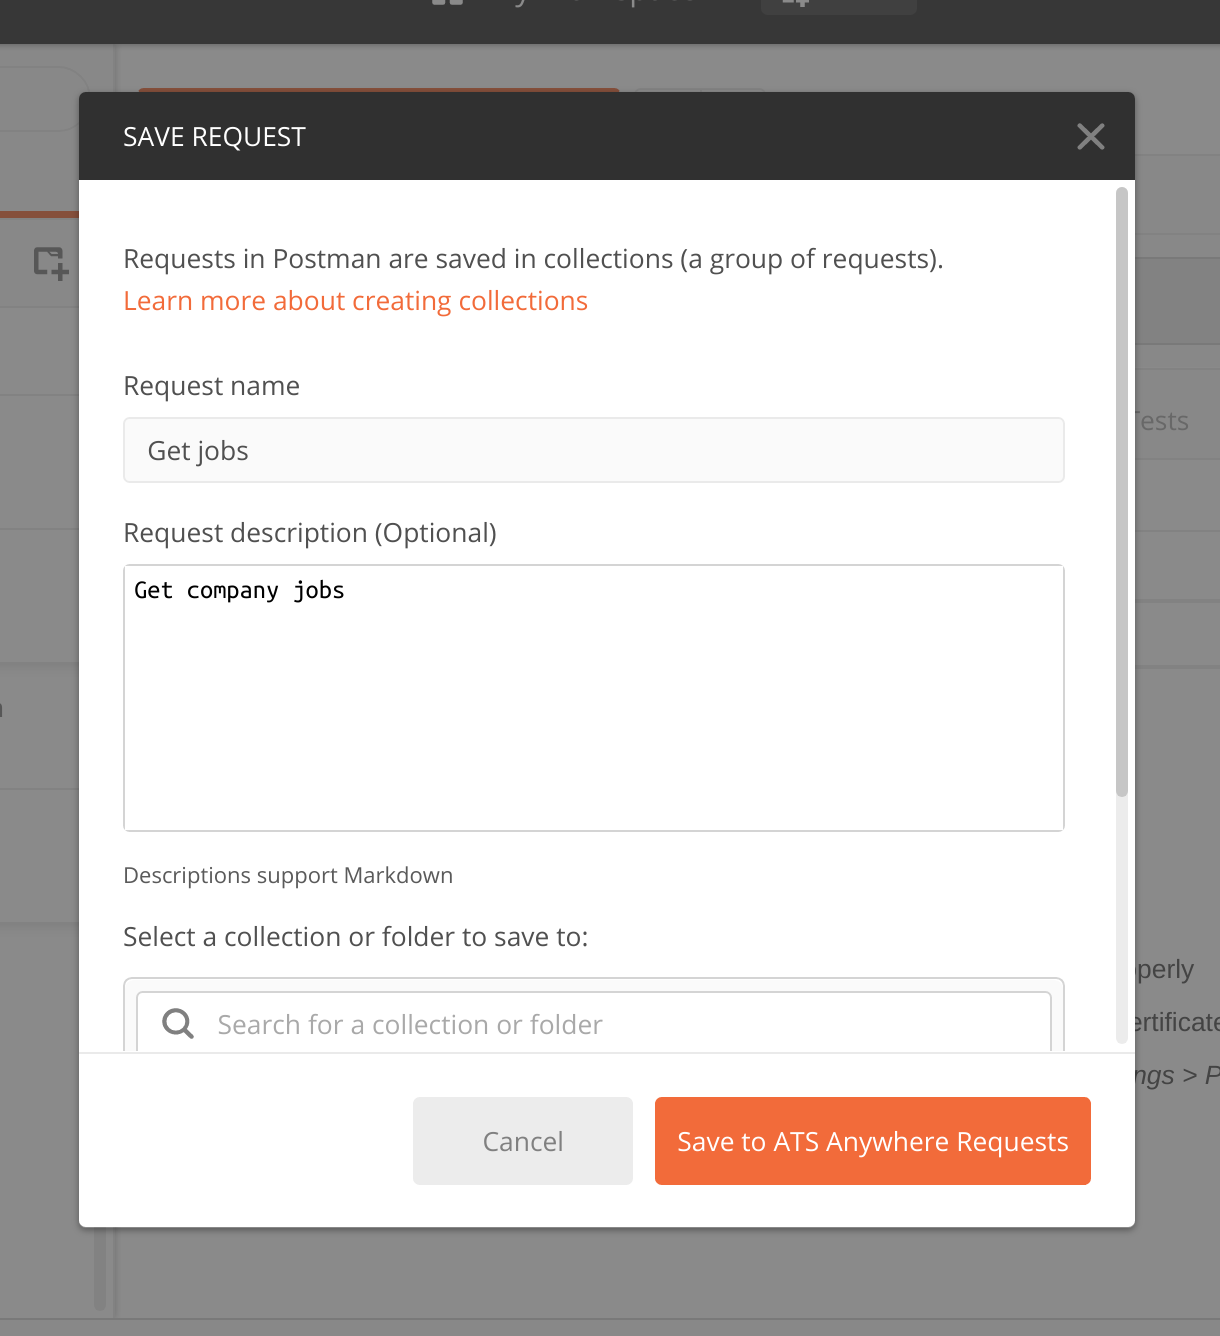 Create a request to get jobs.